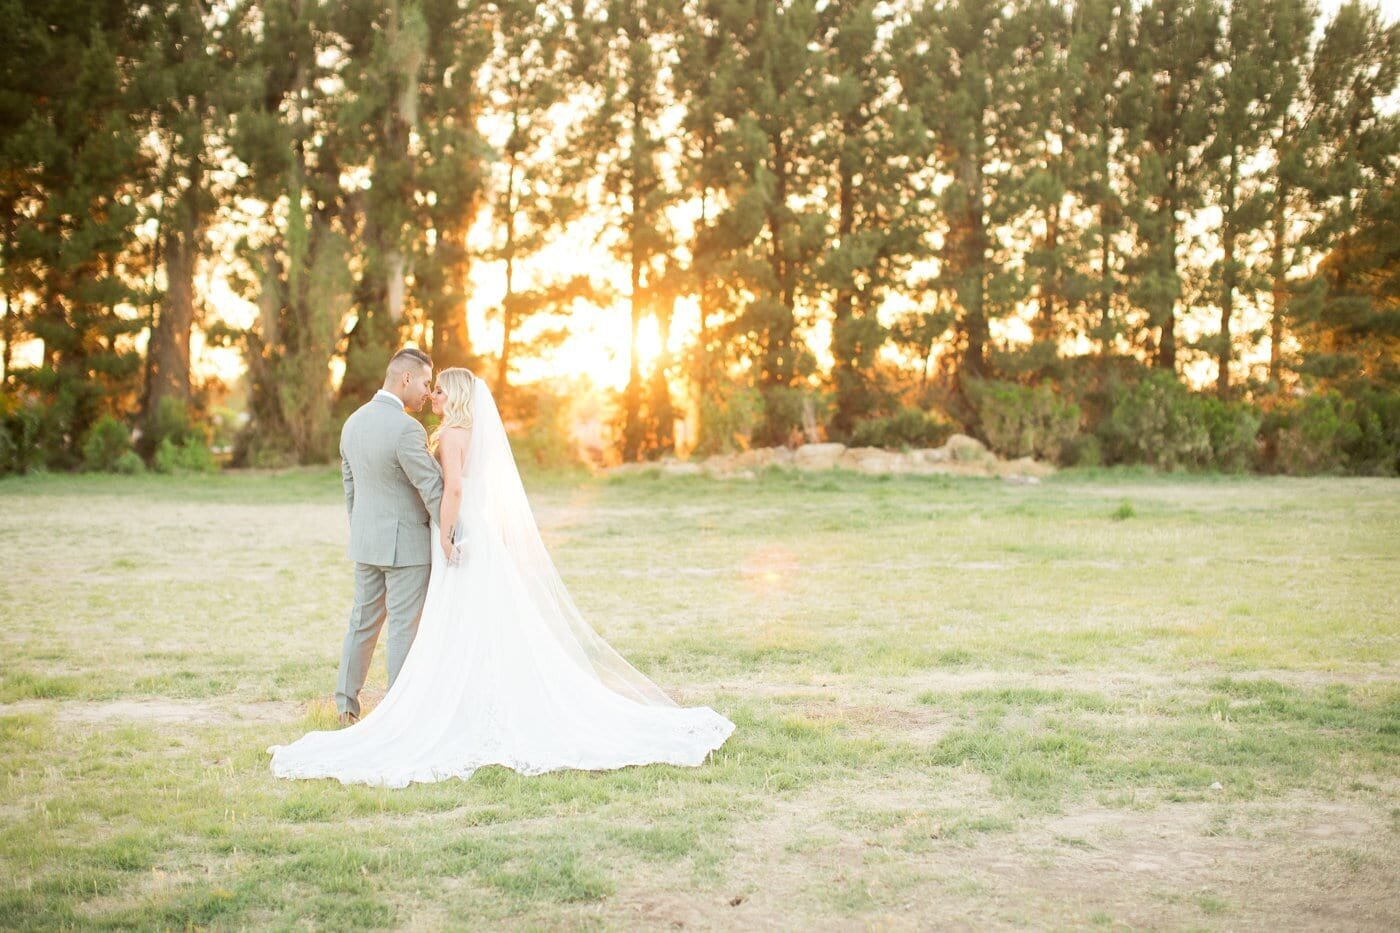 windmill-winery-sunset-photo-of-bride-and-groom